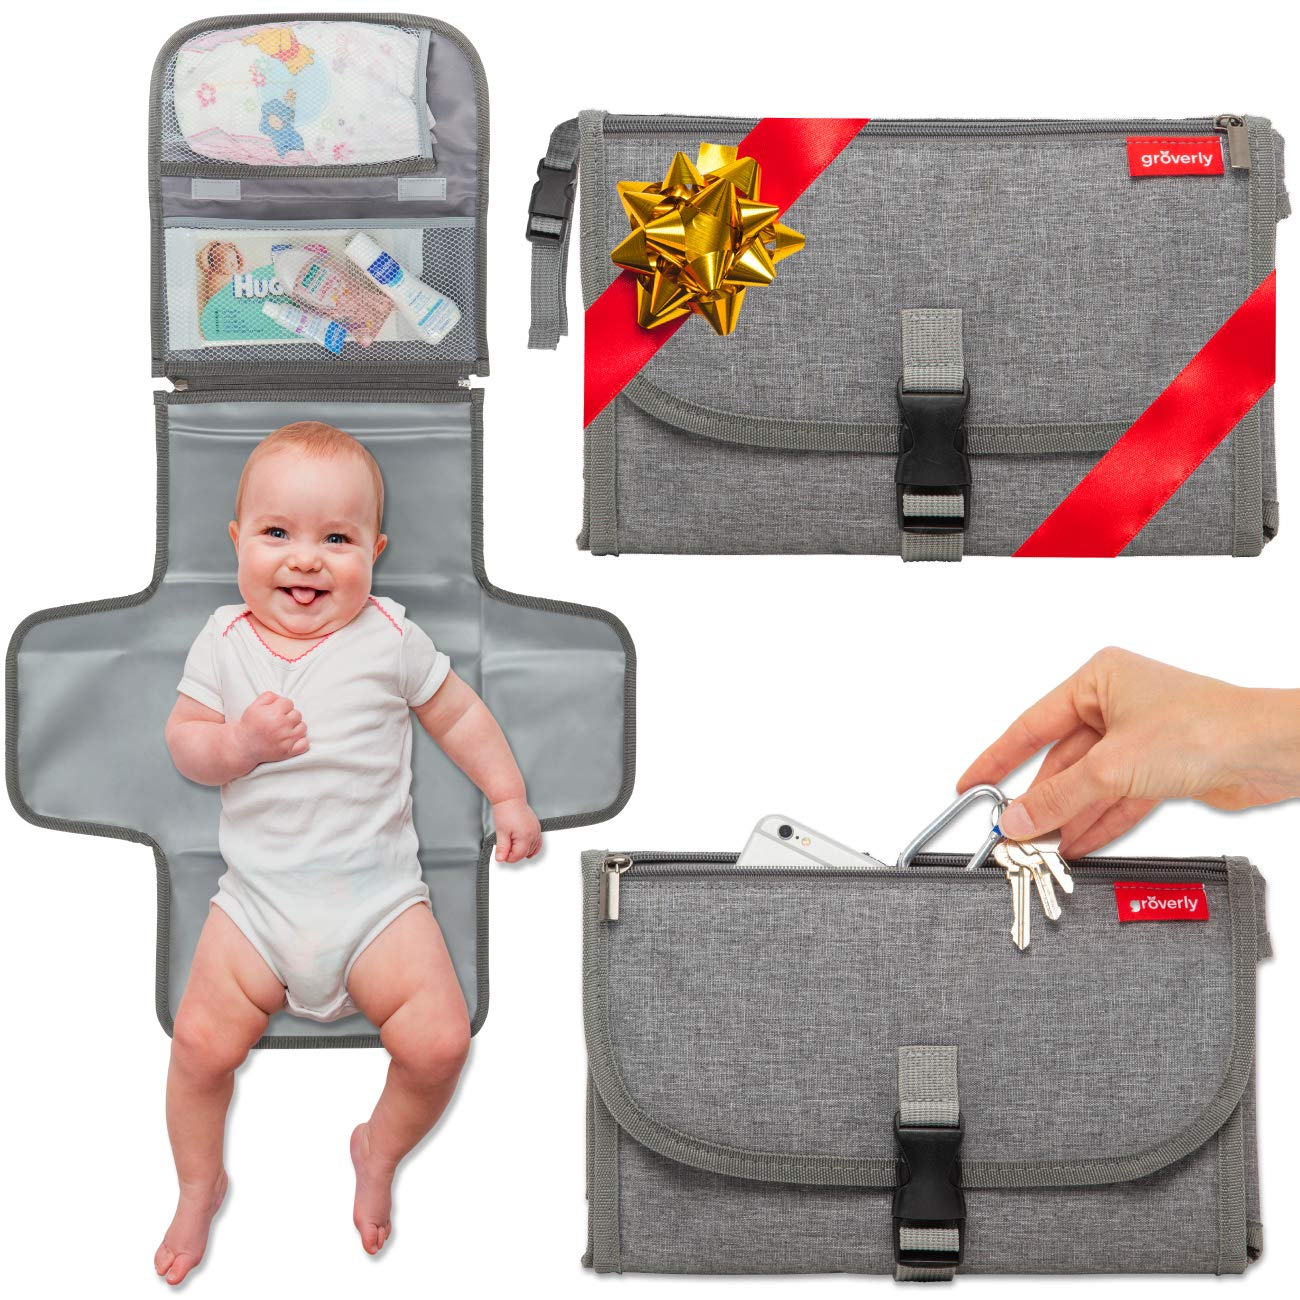 Baby Bags Galore Winnsboro La The Best Portable Changing Station January 2020